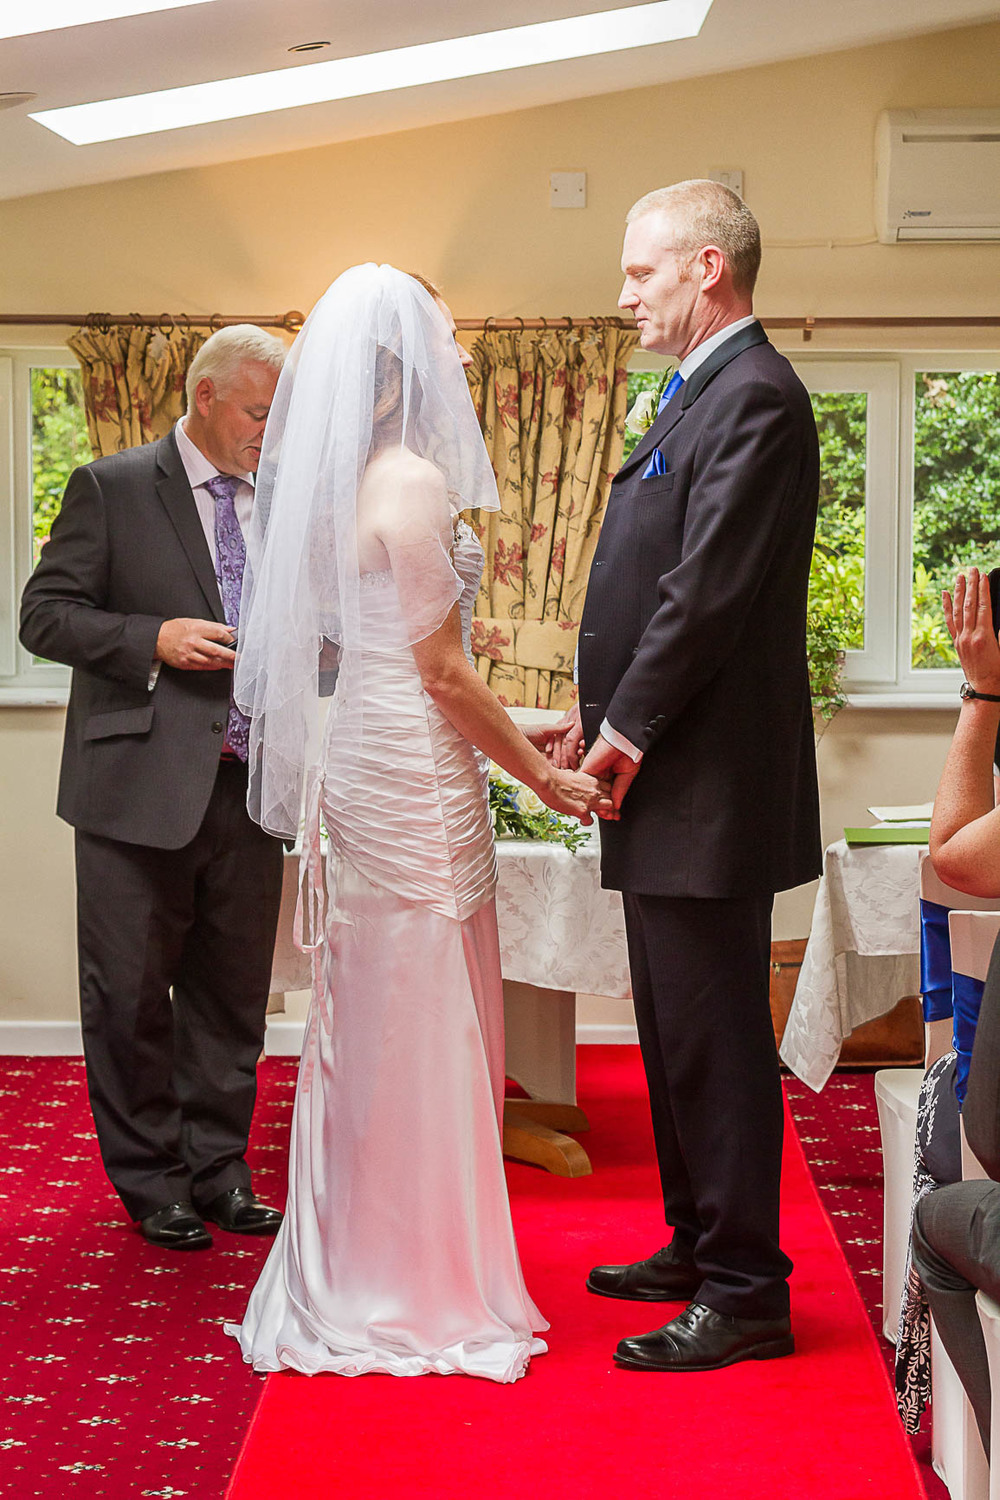 Kelly & Tony_Wedding_Windy Harbour Farm_July2015_SJW Photography_Warrington-174.jpg